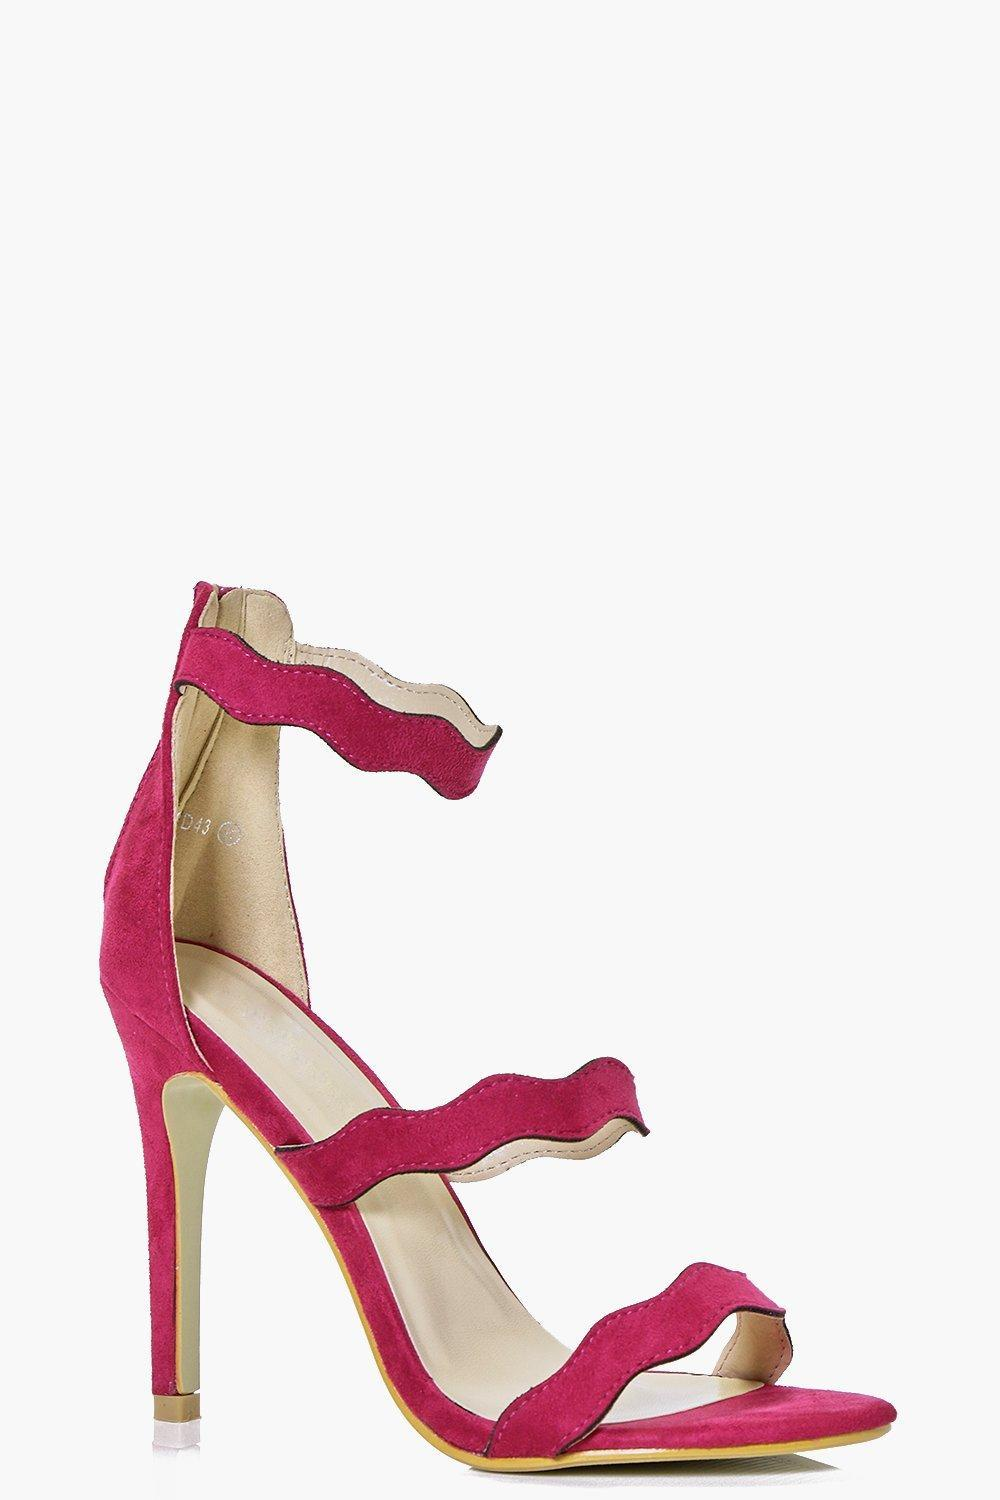 Three Wave Strap Heels Fuchsia - predominant colour: hot pink; occasions: evening, occasion; material: faux leather; heel height: high; ankle detail: ankle strap; heel: stiletto; toe: open toe/peeptoe; style: strappy; finish: plain; pattern: plain; season: s/s 2016; wardrobe: event